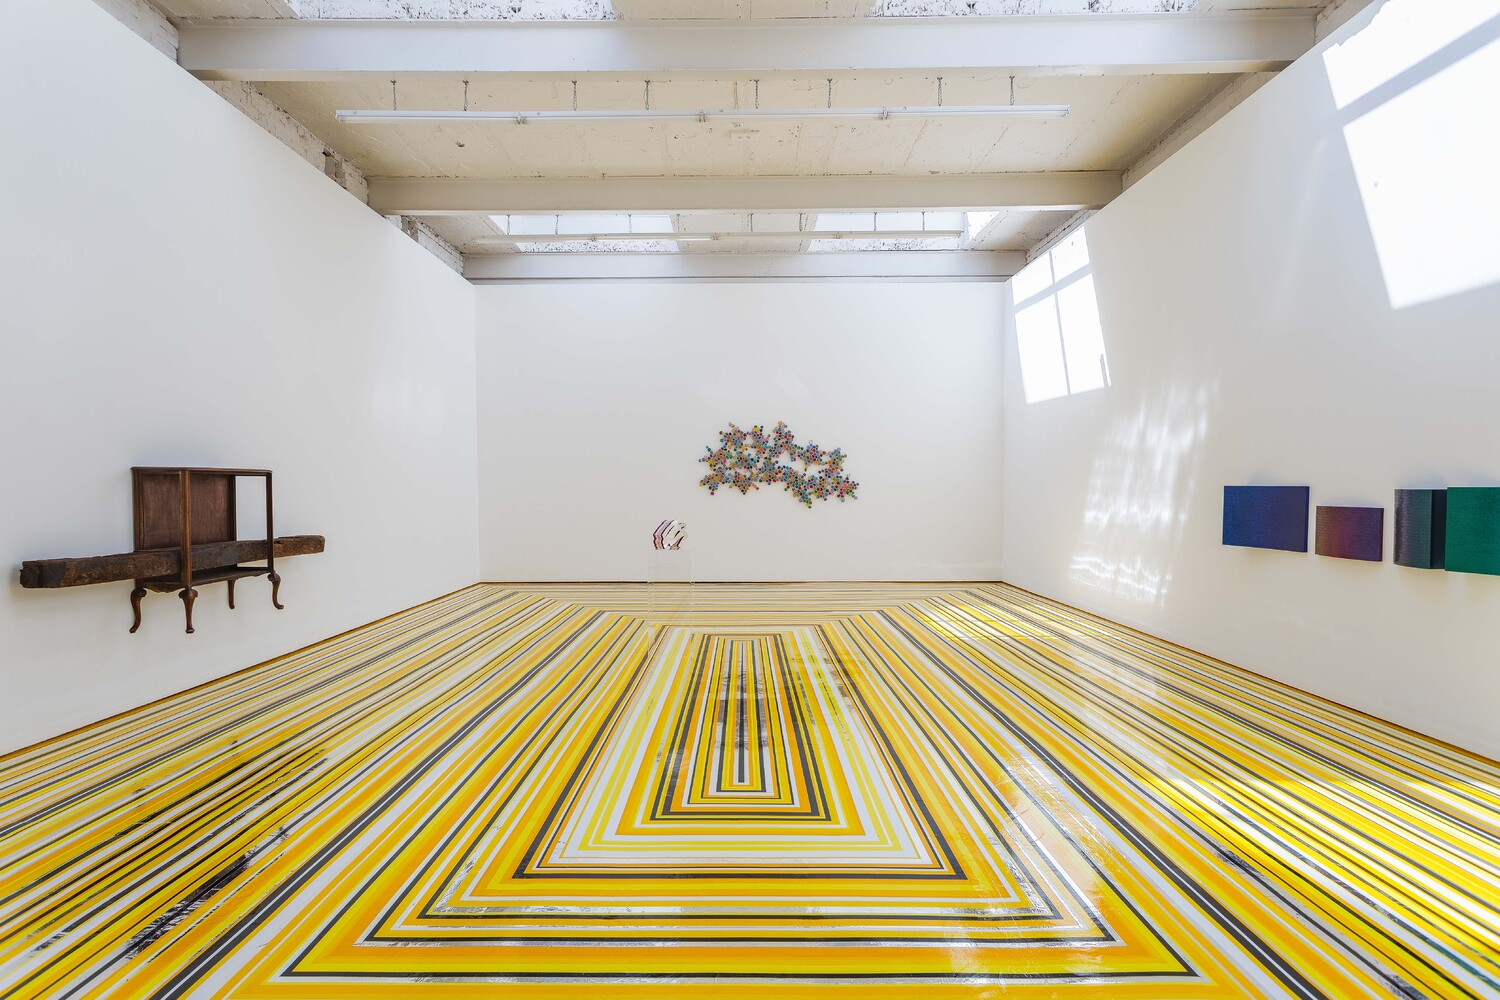 Installation view Jim Lambie 'Buttercup' The Modern Institute, Aird's Lane, 2021